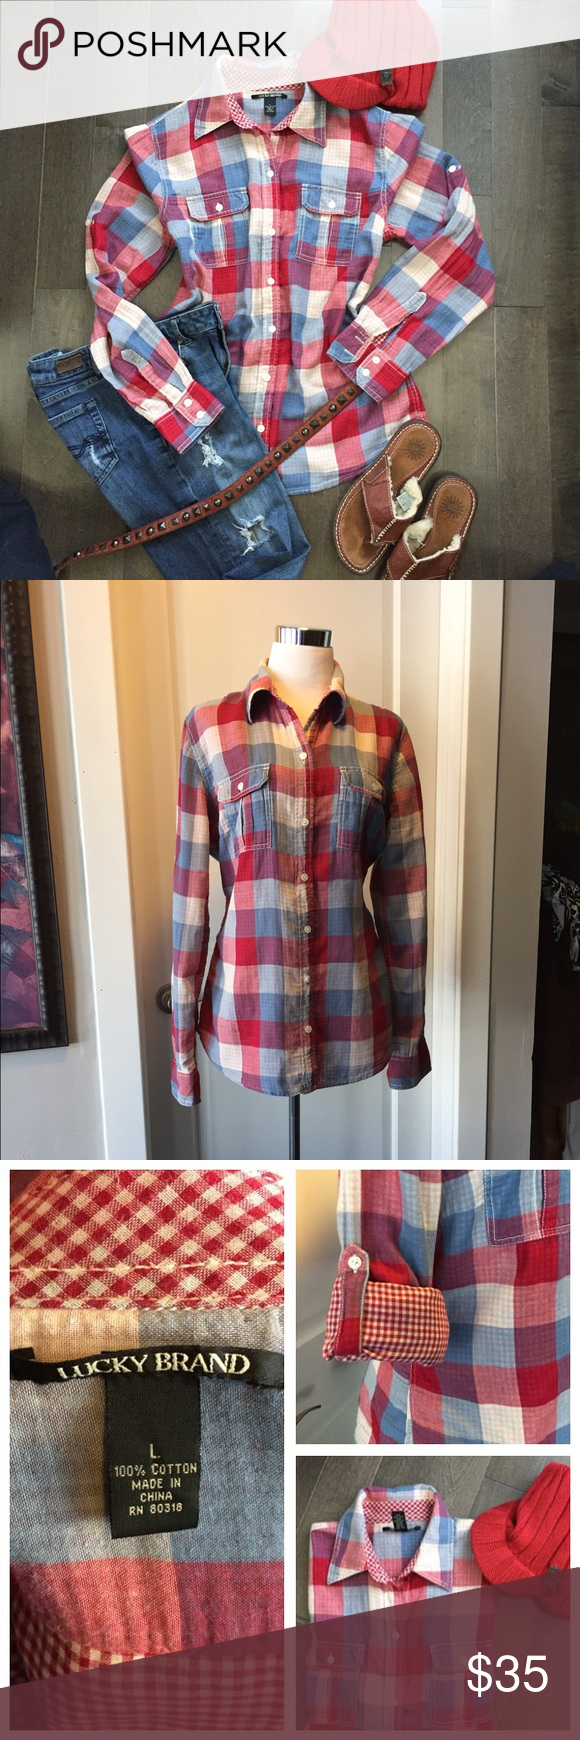 completely lined lucky brand shirt Super cute, completely lined lucky brand shirt. Great colors with this plaid.❤️❤️ Lucky Brand Tops Button Down Shirts